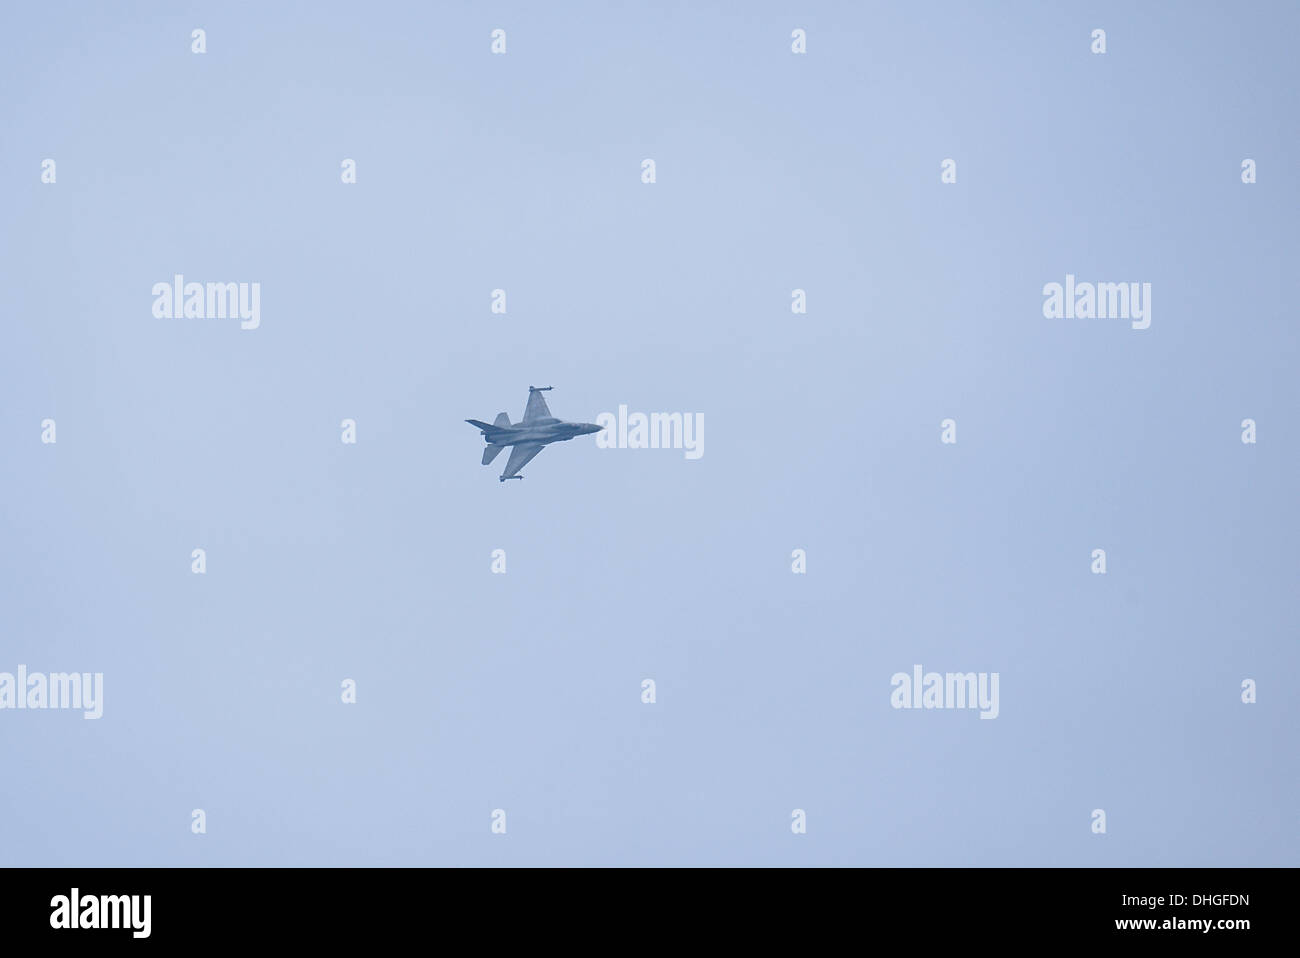 The F-16C of the Zeus team during a high G maneuver during the airshow over Thessaloniki - Stock Image